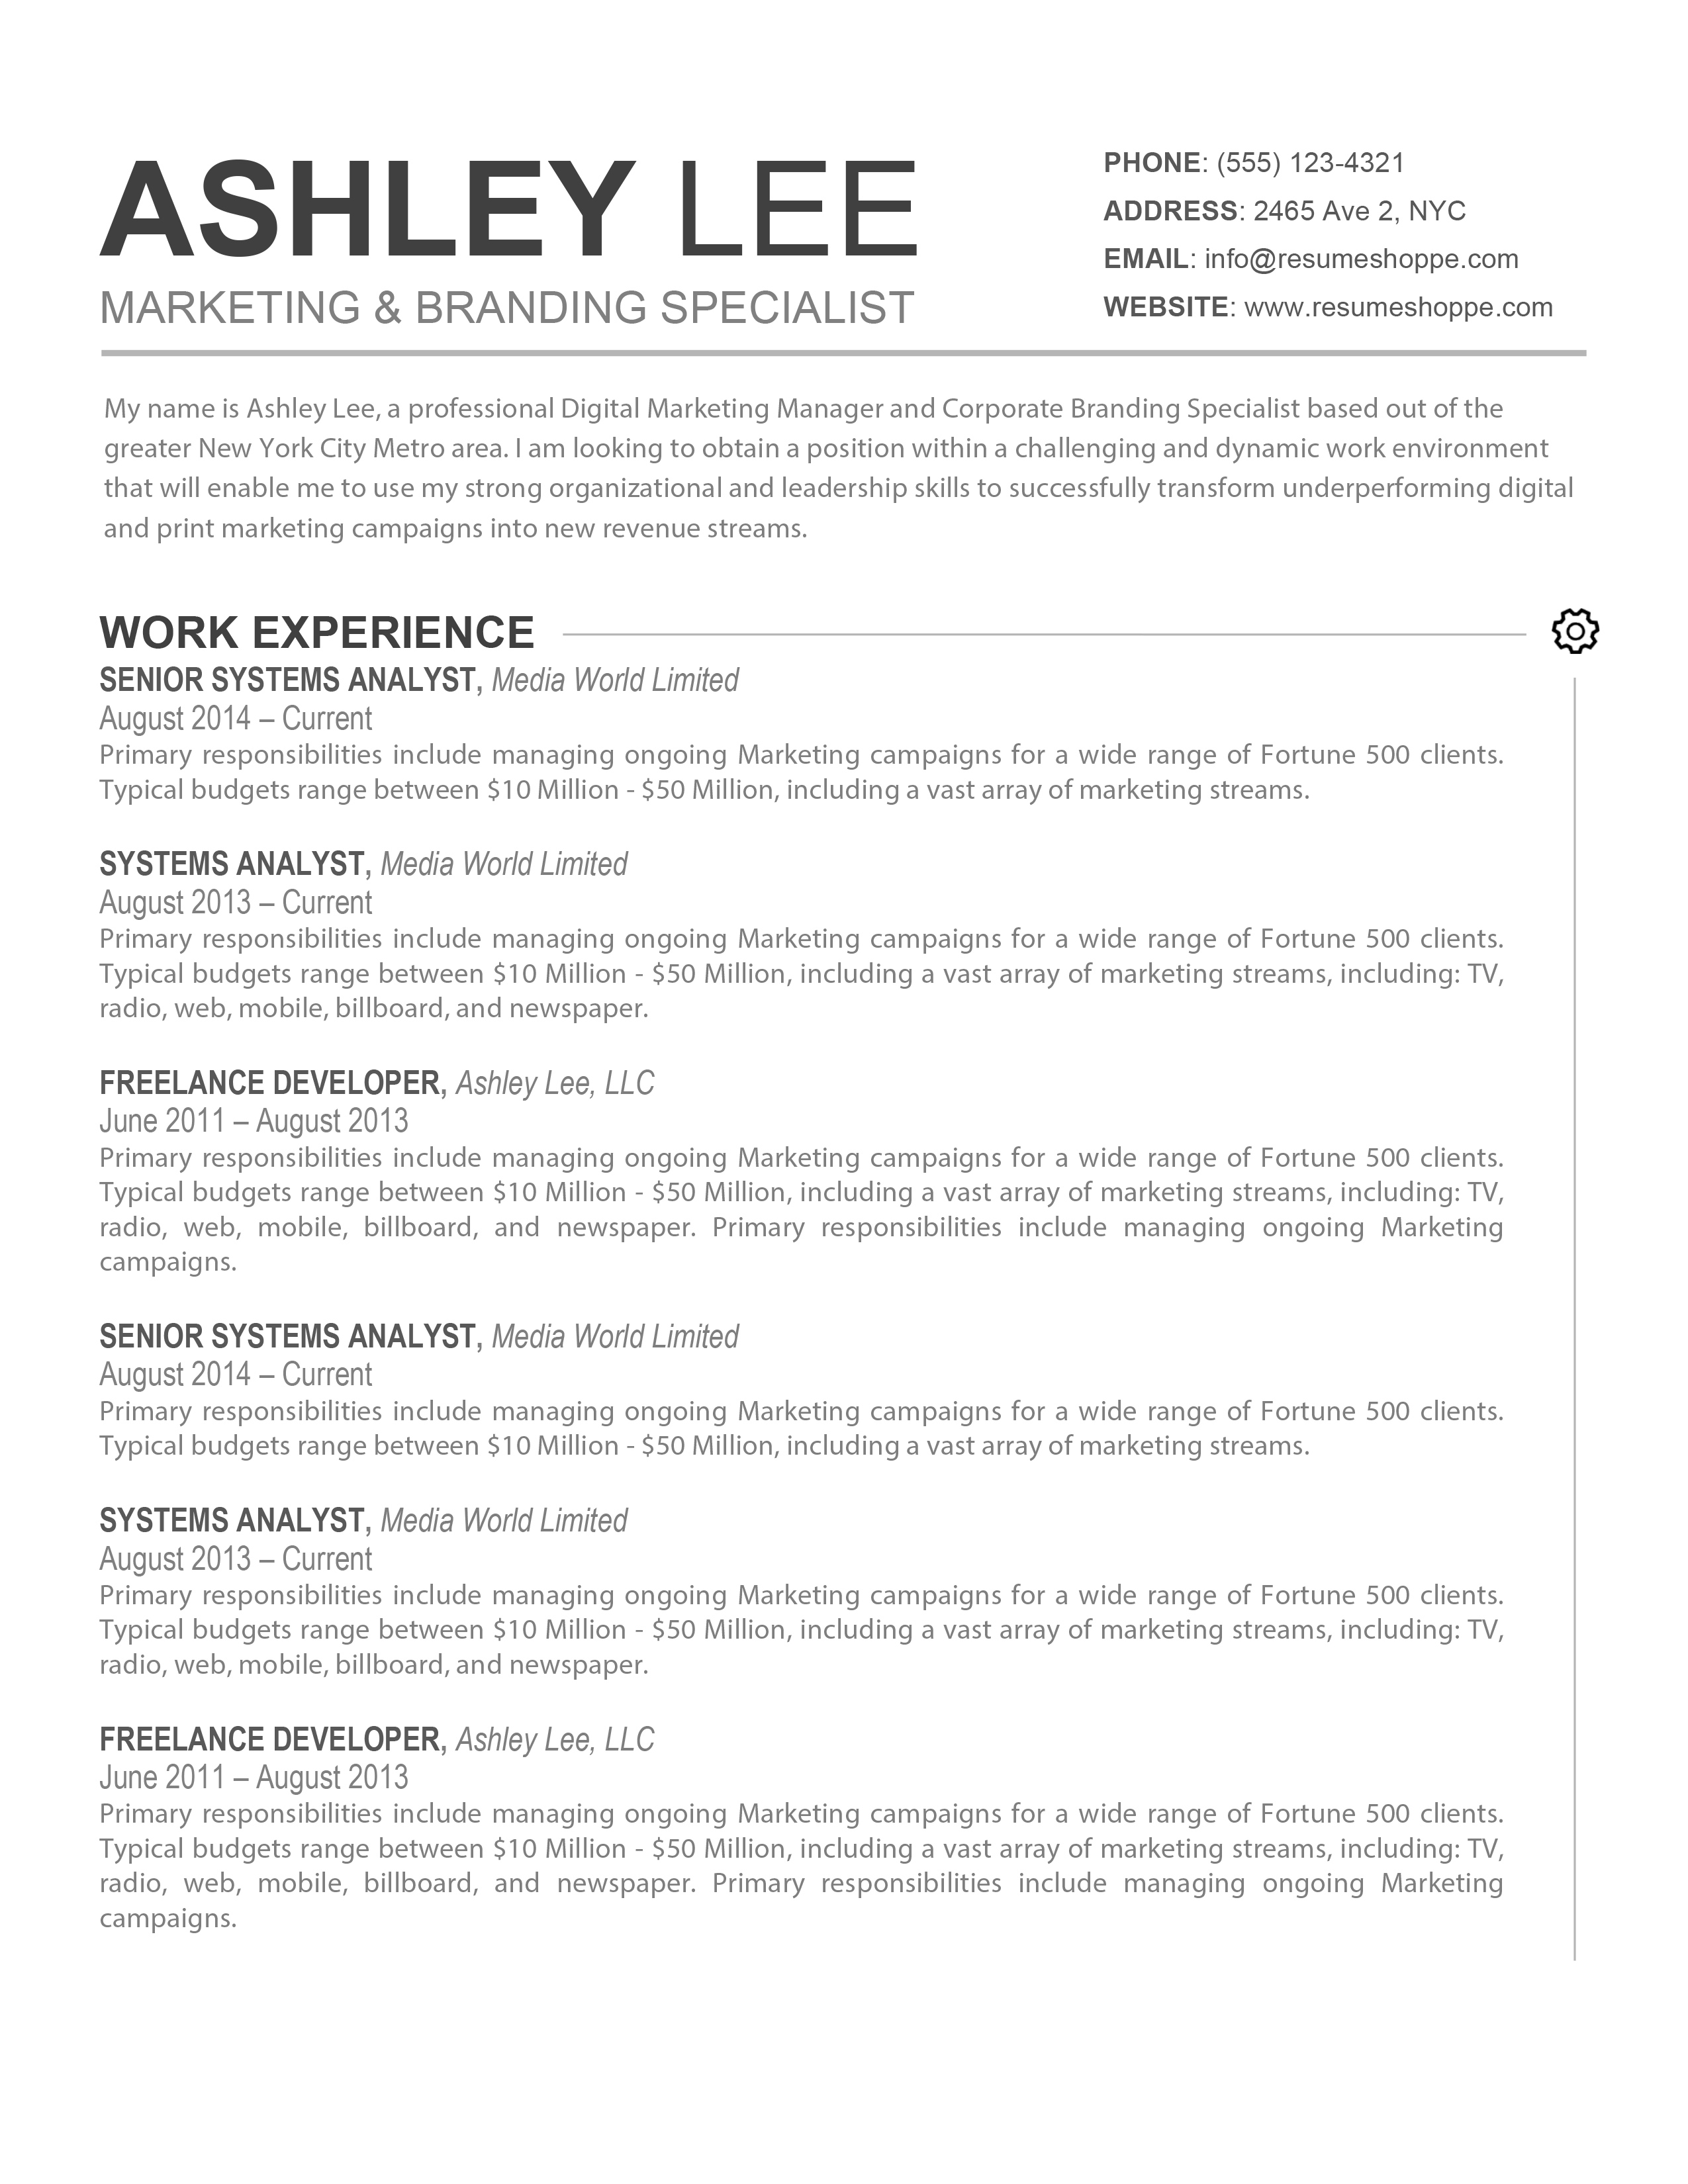 consulting partner resumes sample customer service resume consulting partner resumes management consulted management consulting career deloitte resumes education software development administrative